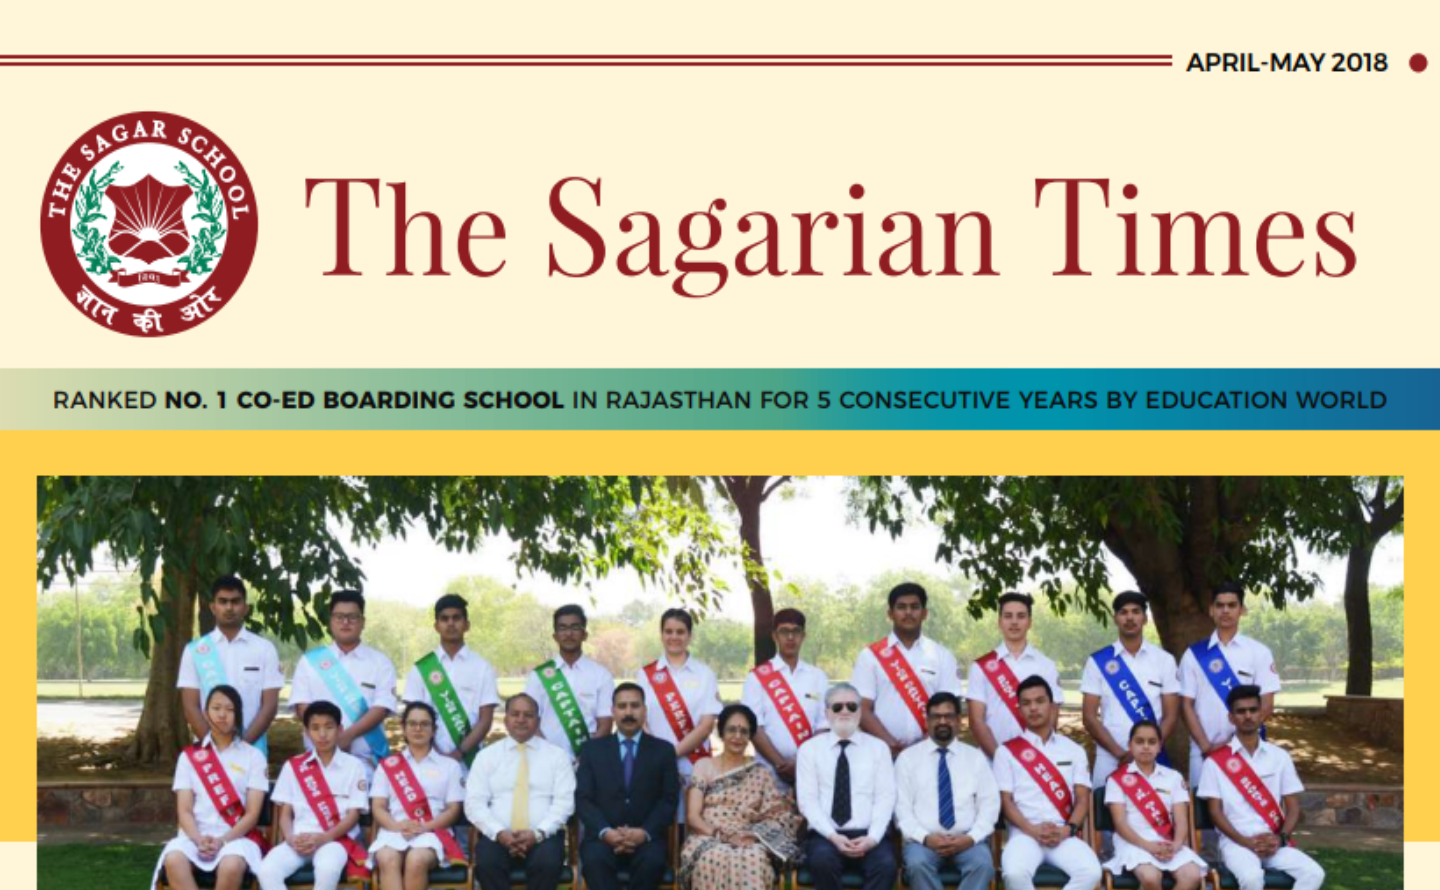 The Sagarian Times April - May 2018